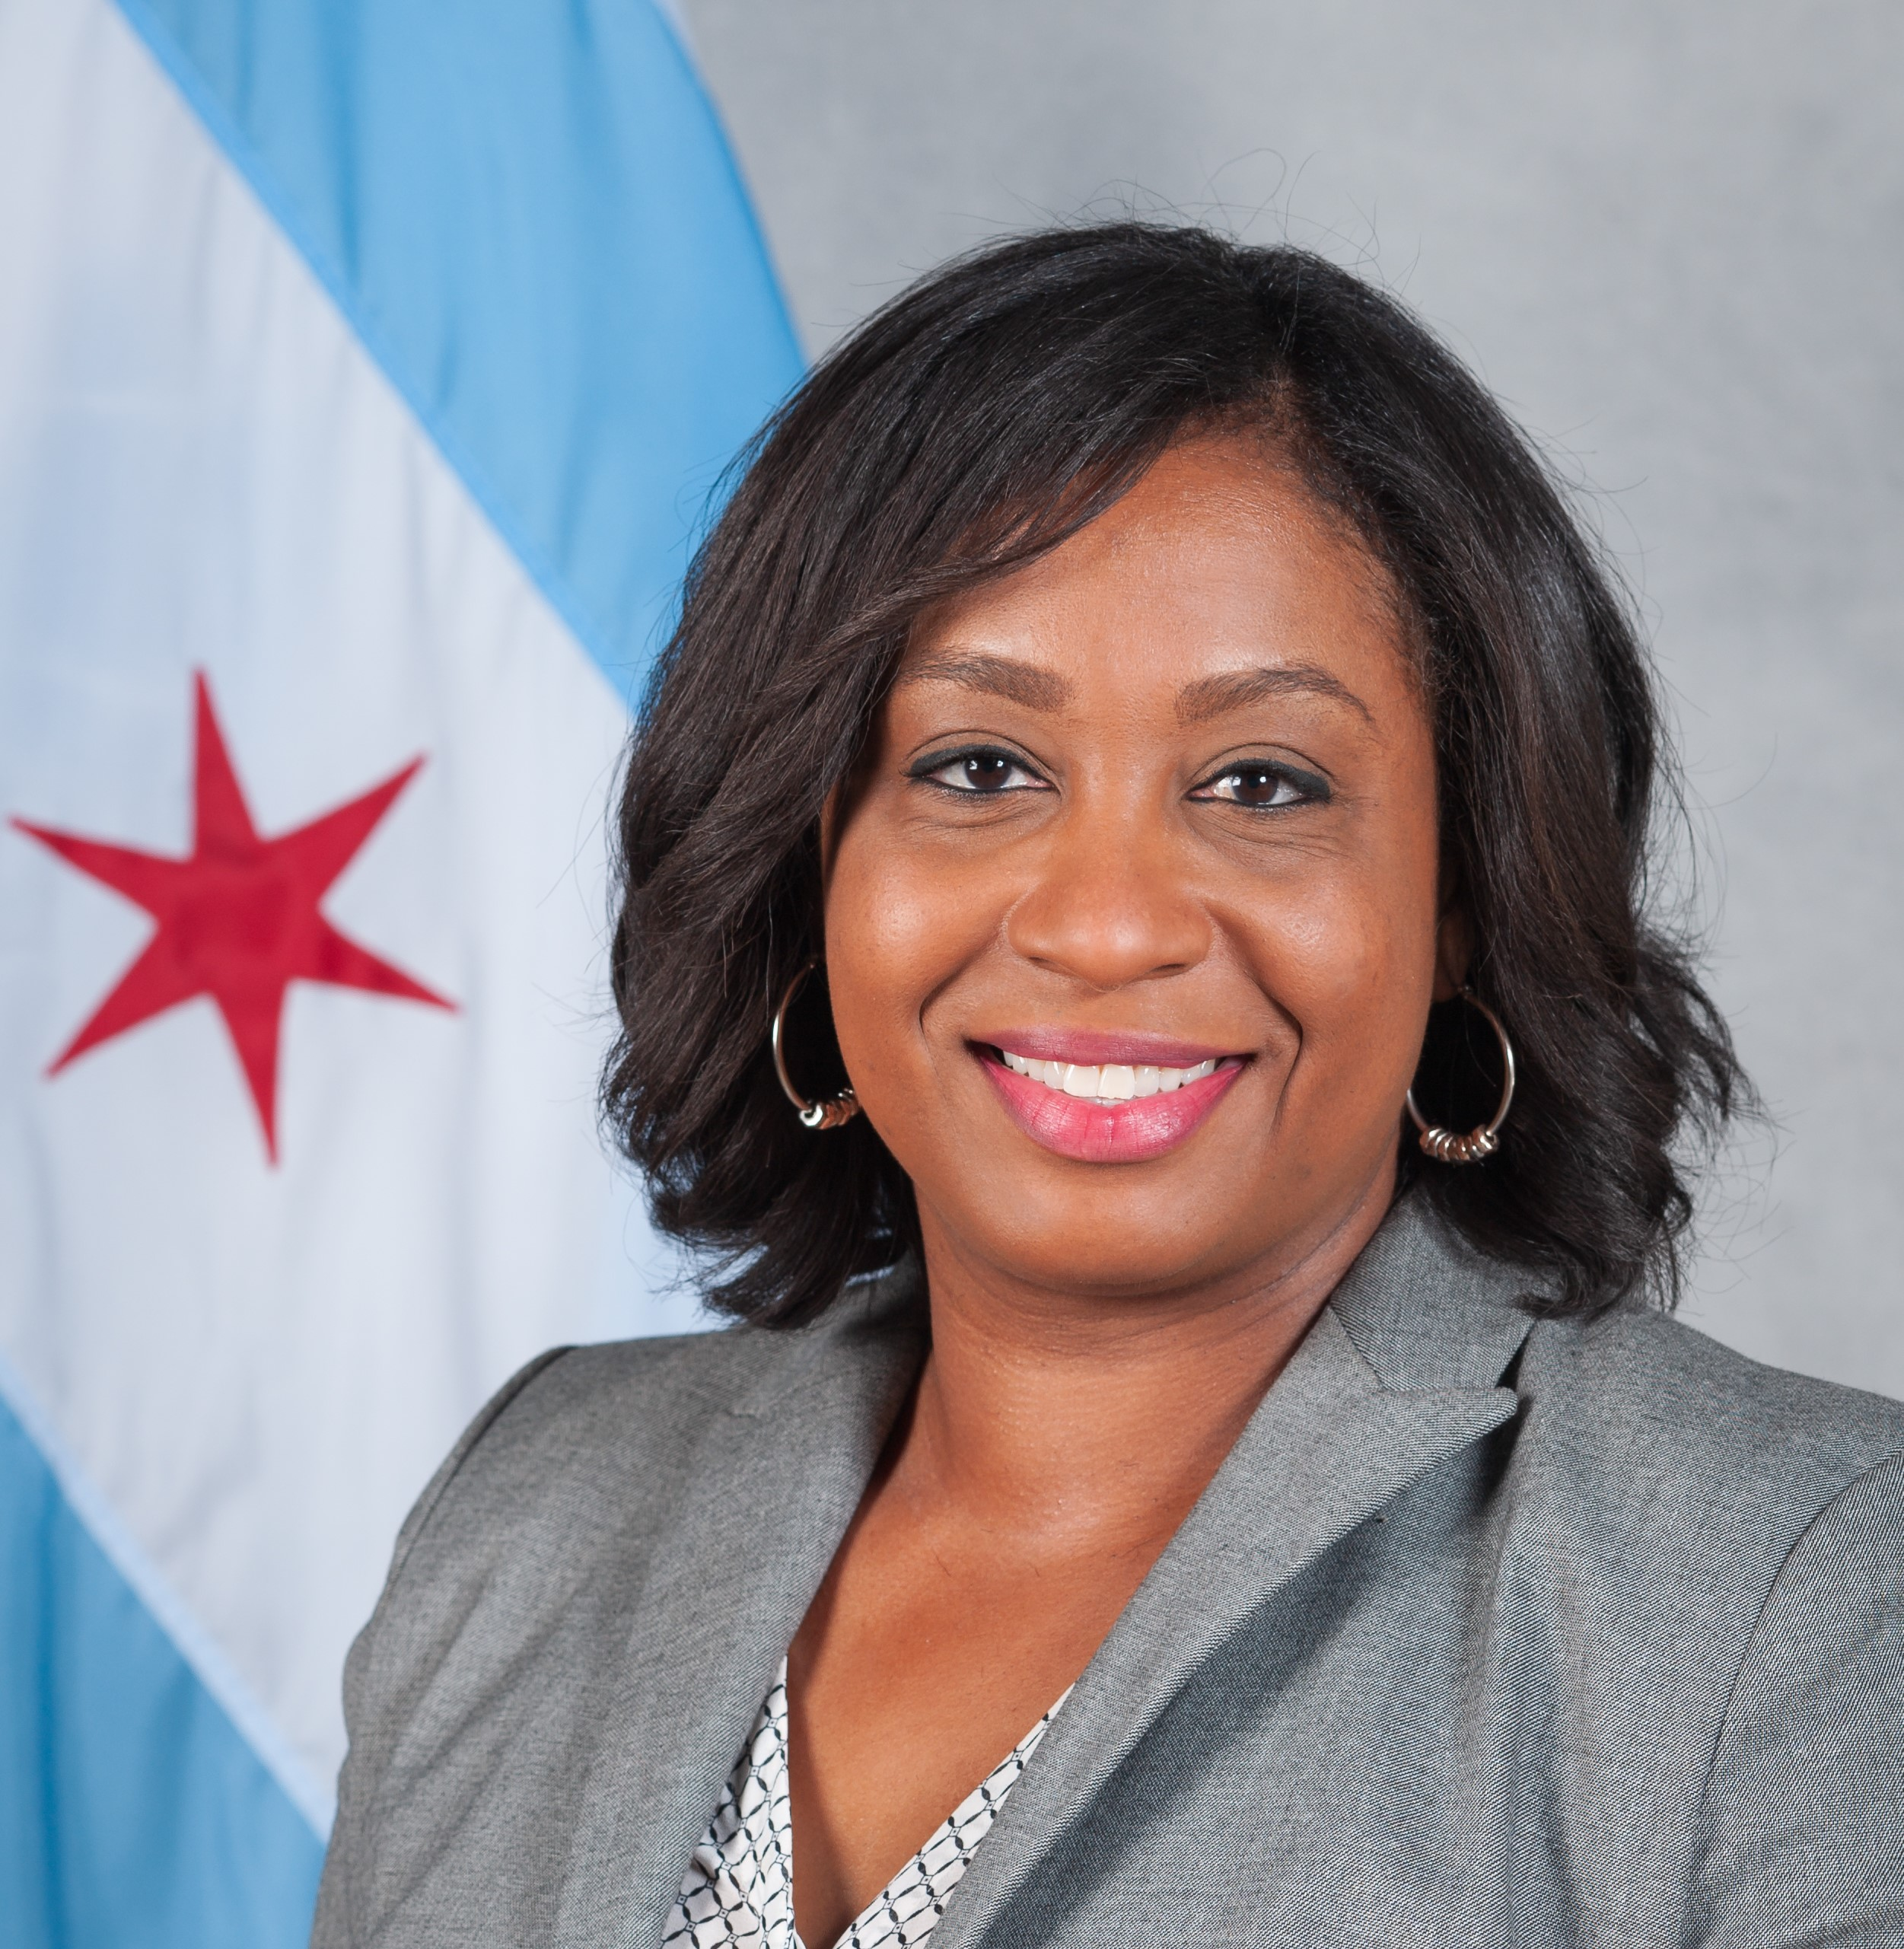 Tamika PuckettChief Risk Officer, City of Chicago